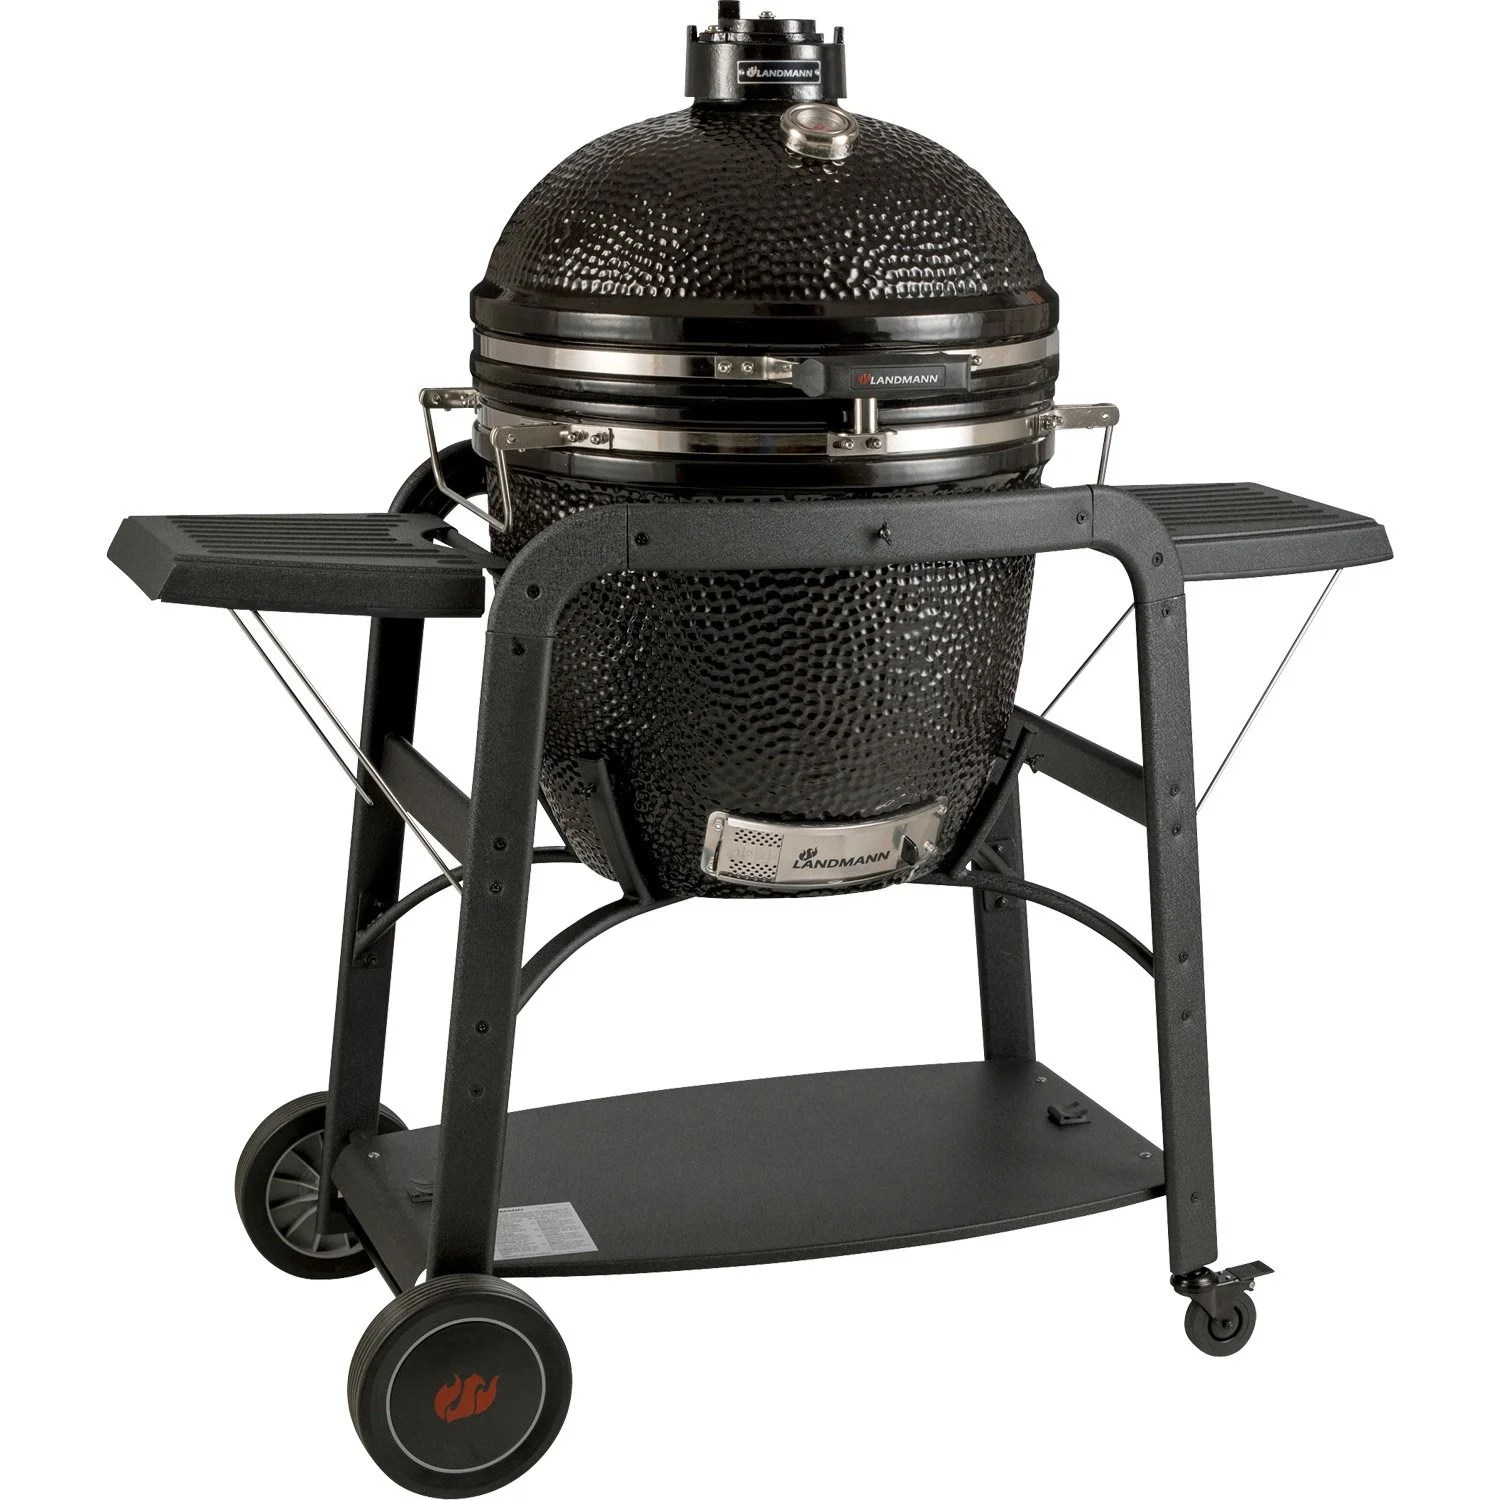 Point P Barbecue Barbecue Au Charbon De Bois Landmann Big Landmann Noir